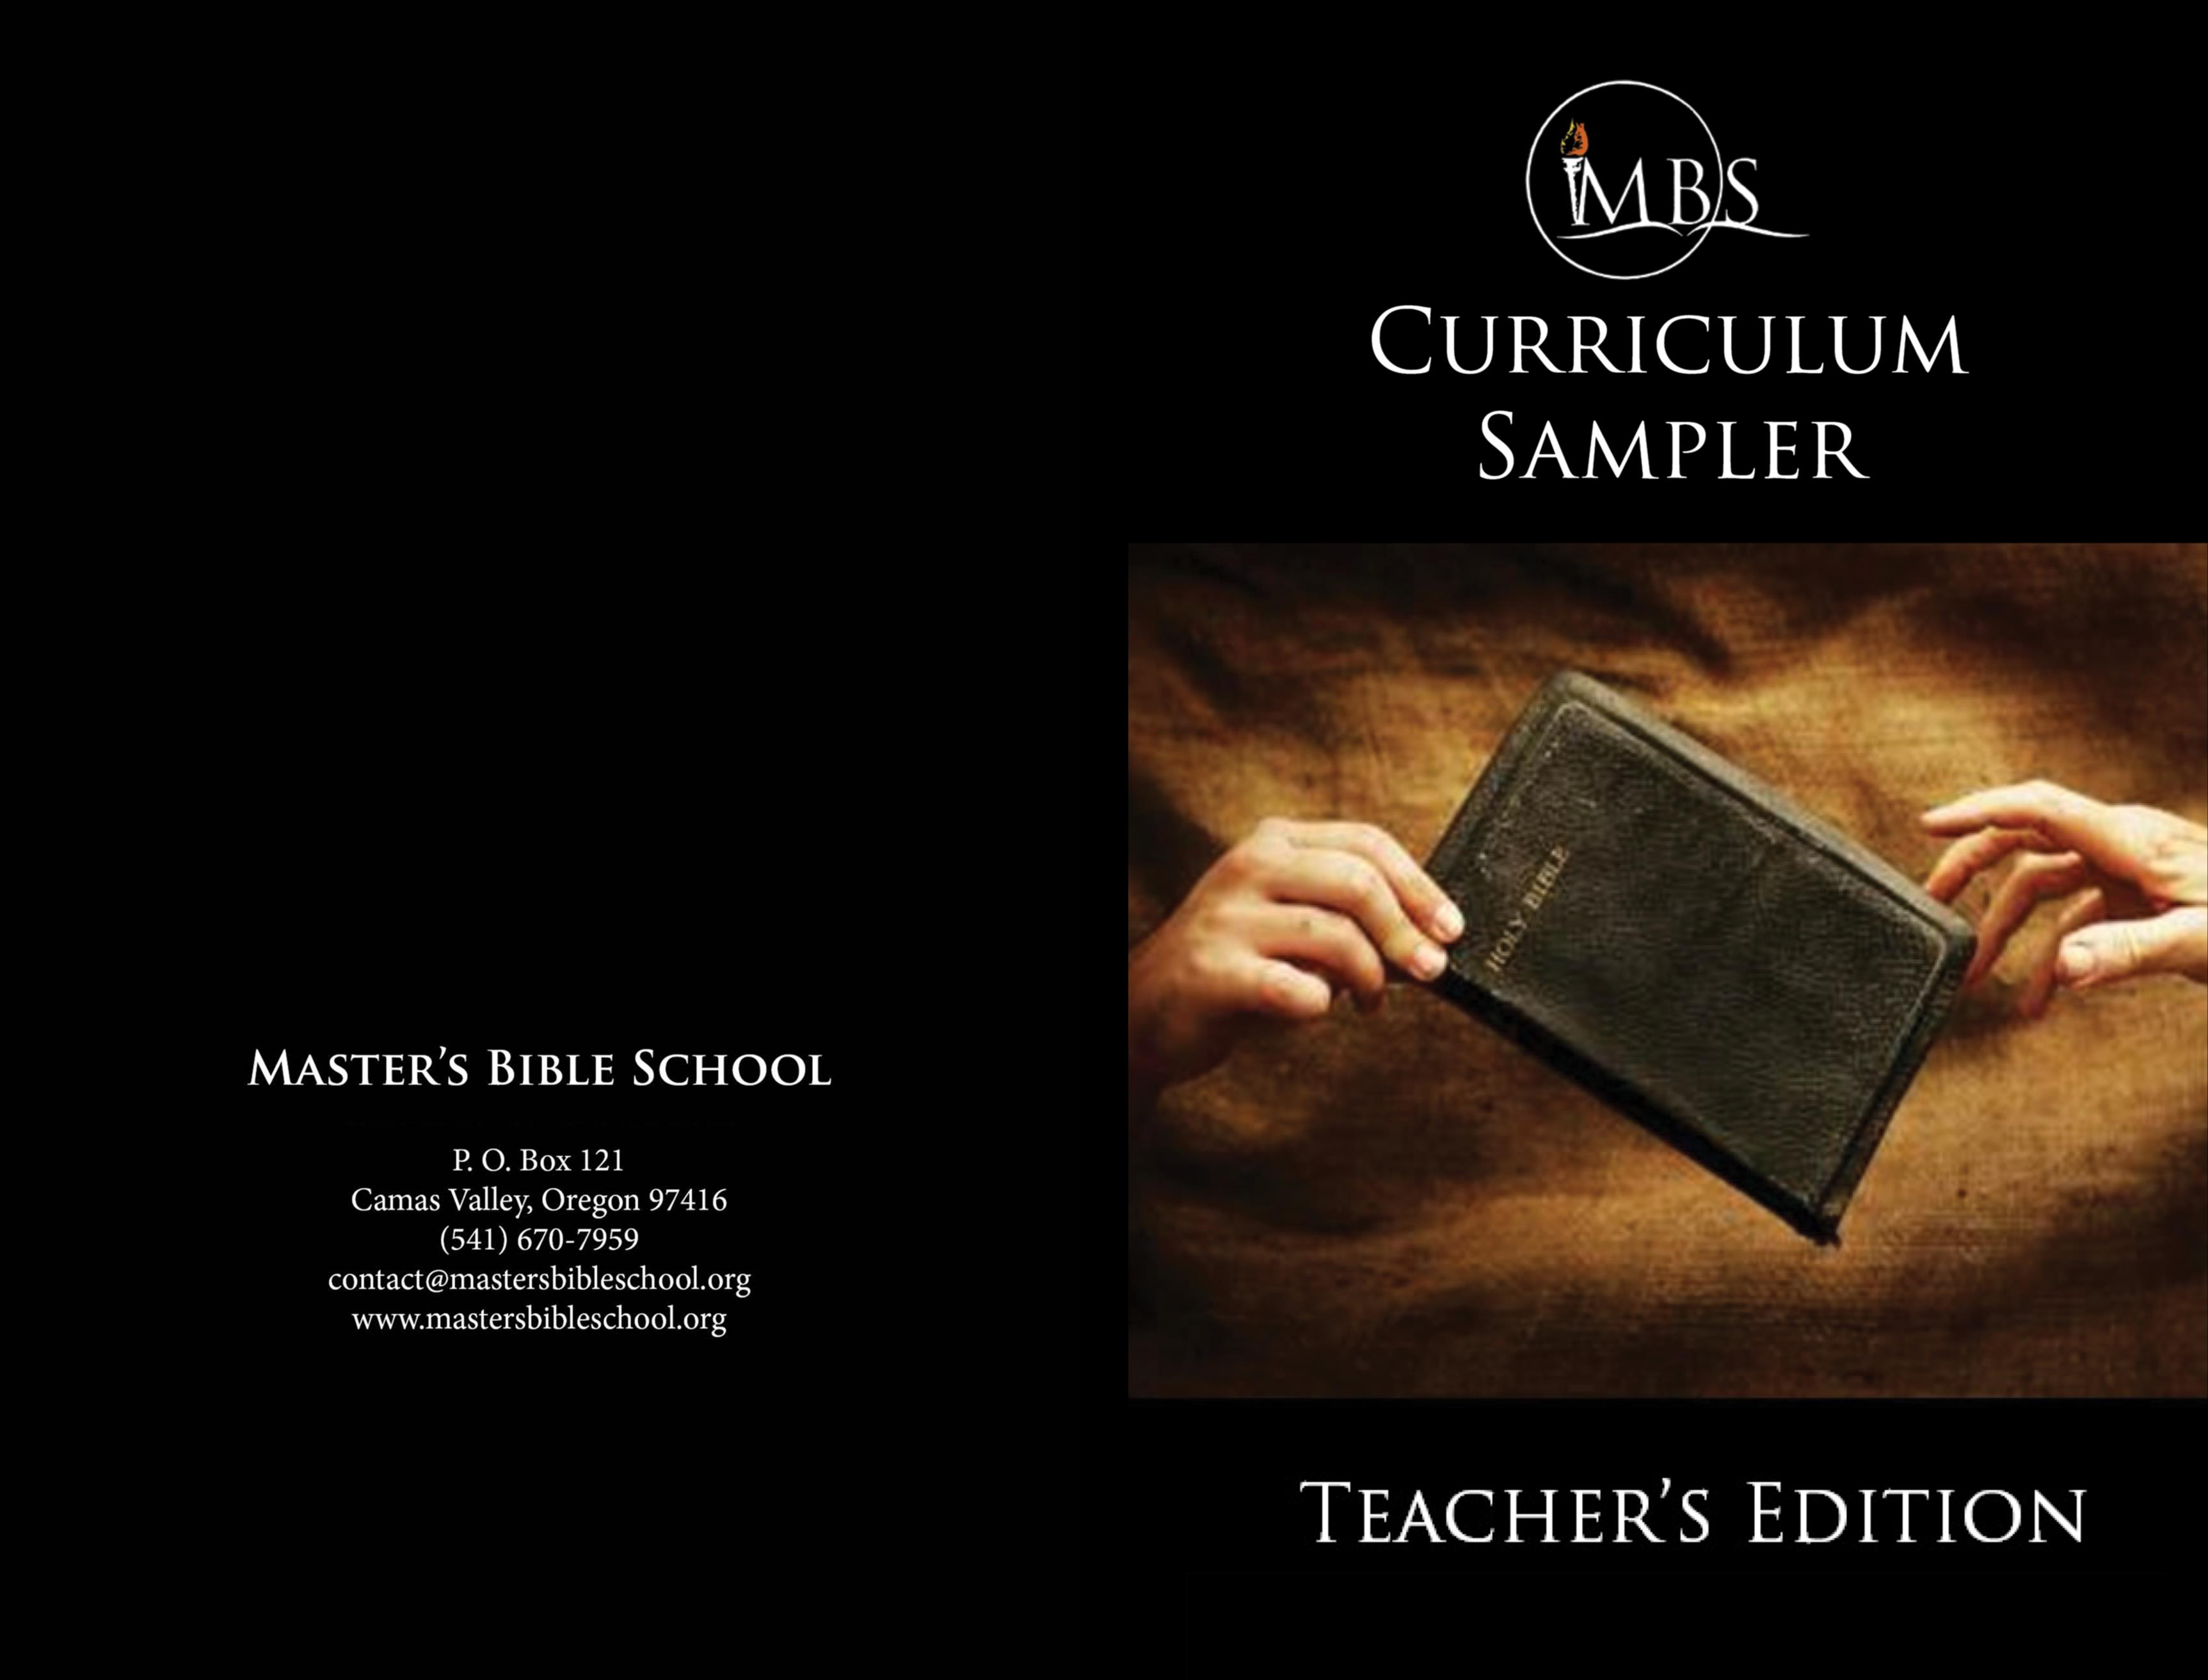 Curriculum Sampler - Teacher